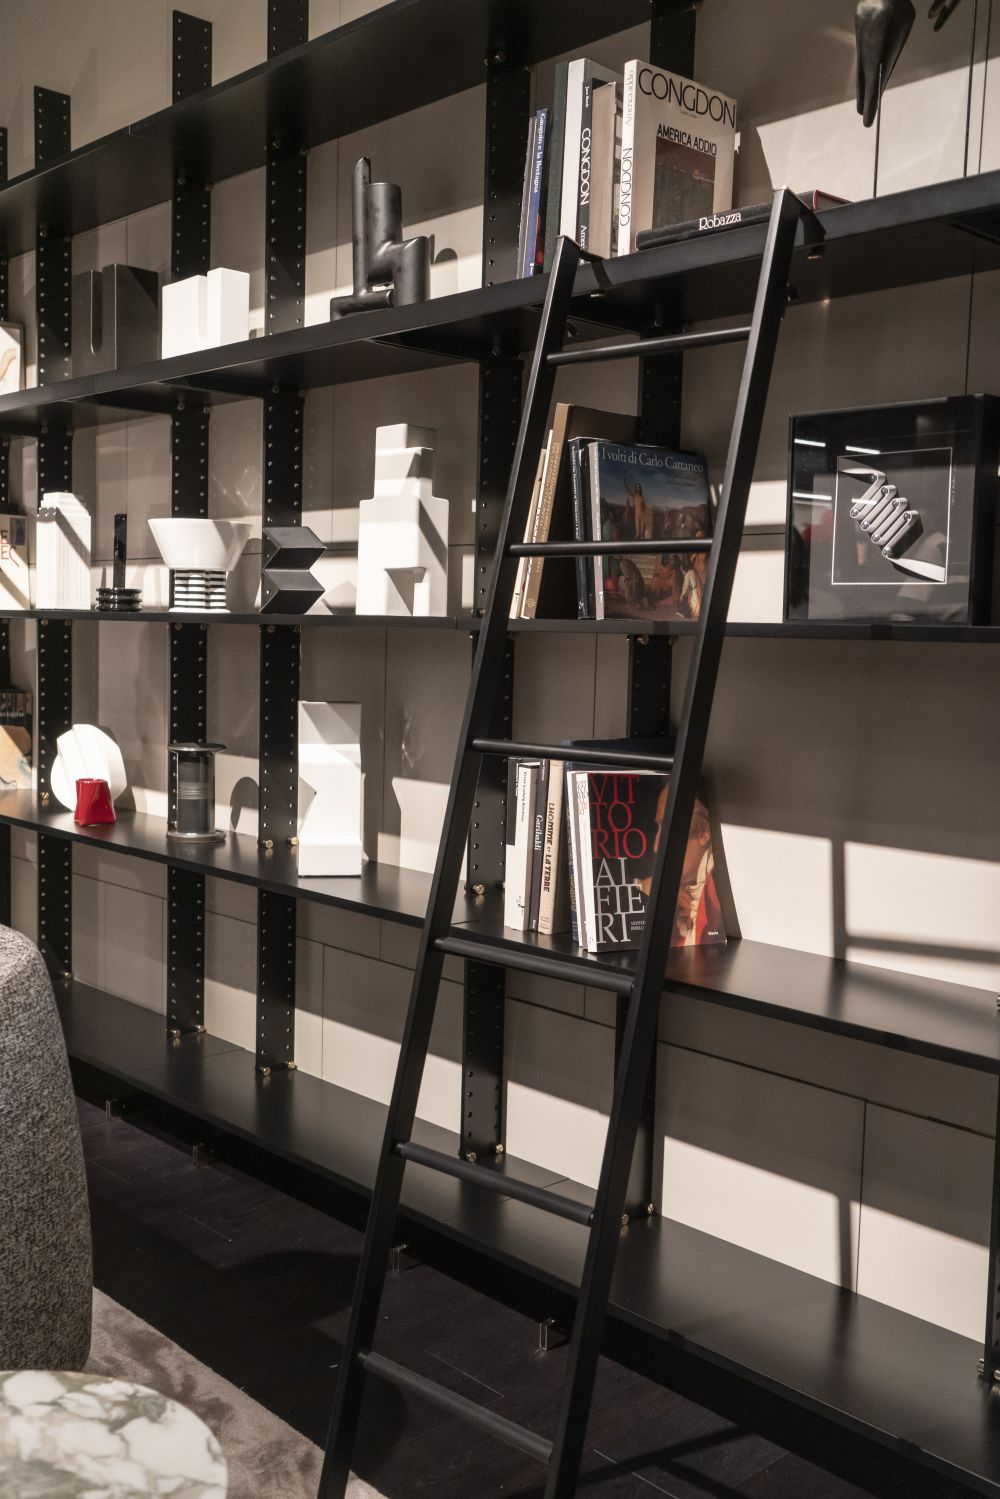 1571084530 323 charming ways to integrate bookshelves into any space - Charming Ways To Integrate Bookshelves Into any Space